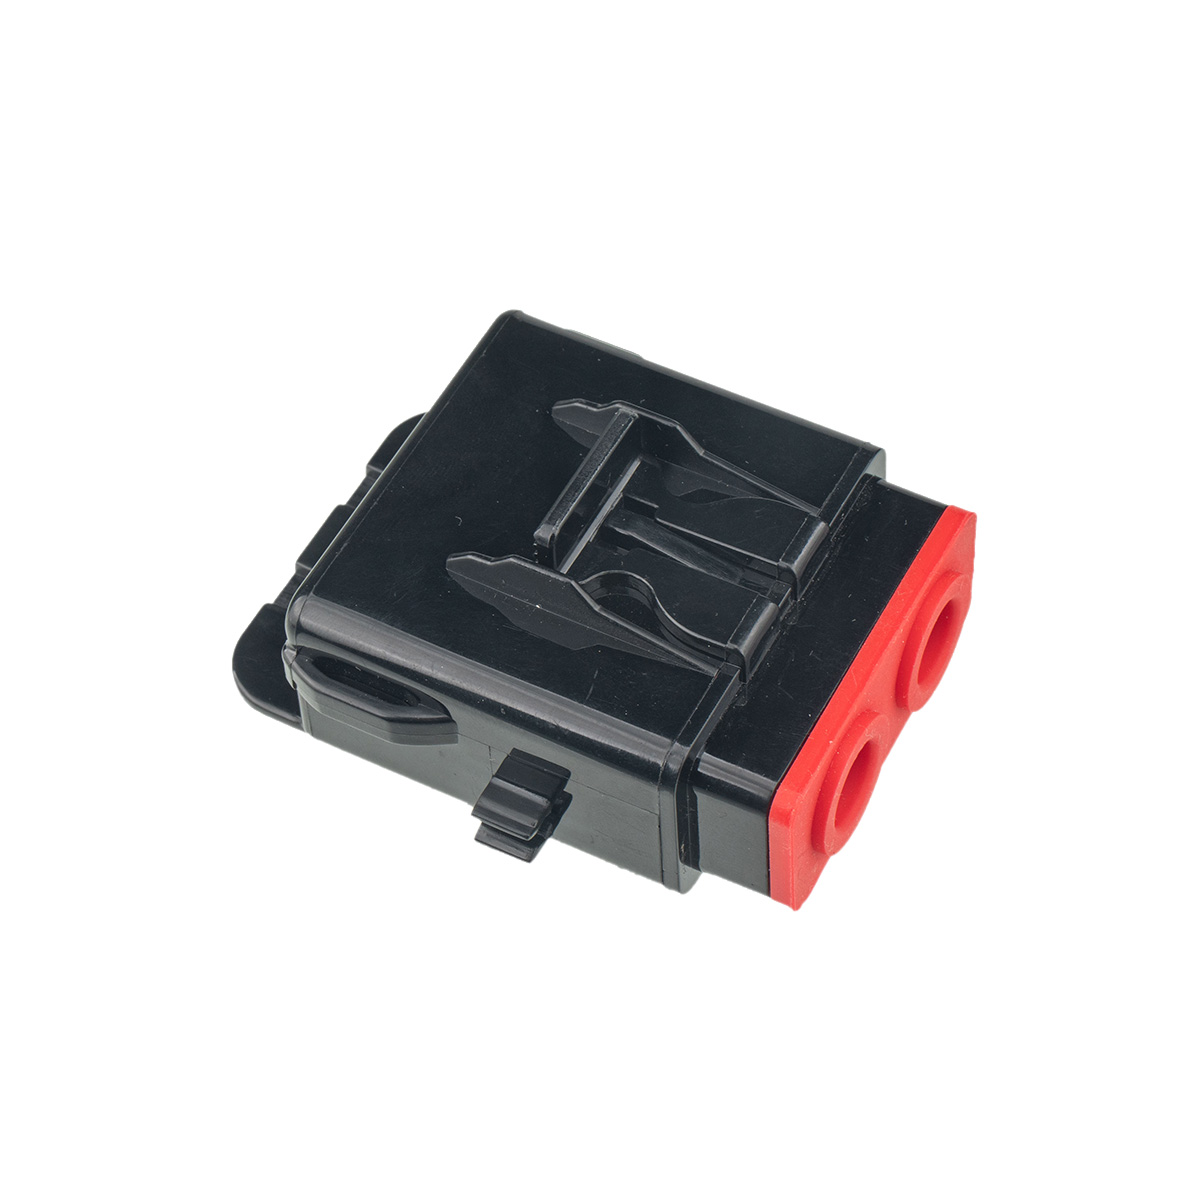 Car fuse kit AFS 60A+ATC 20A 4GA Car Fuse Holder Black+Red color with wrench Black+red